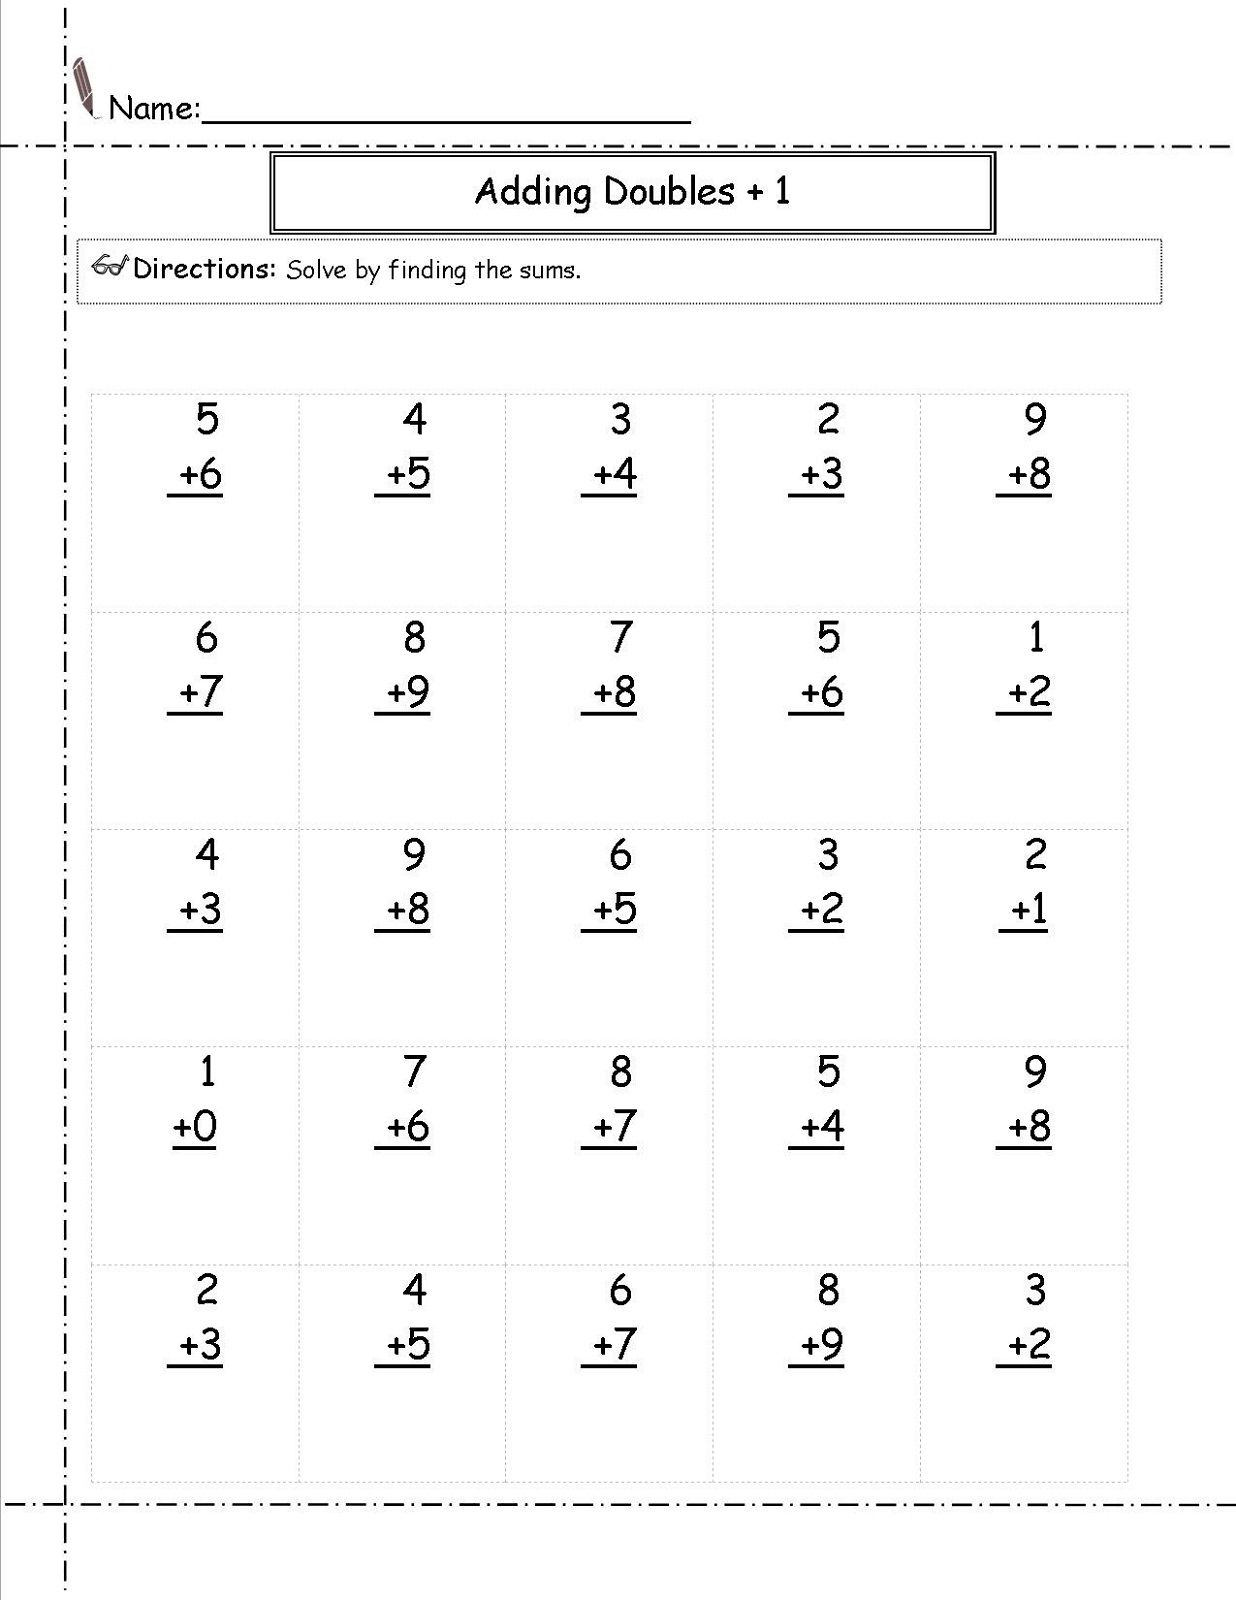 Free Math Worksheets For 1st Grade Good Quality